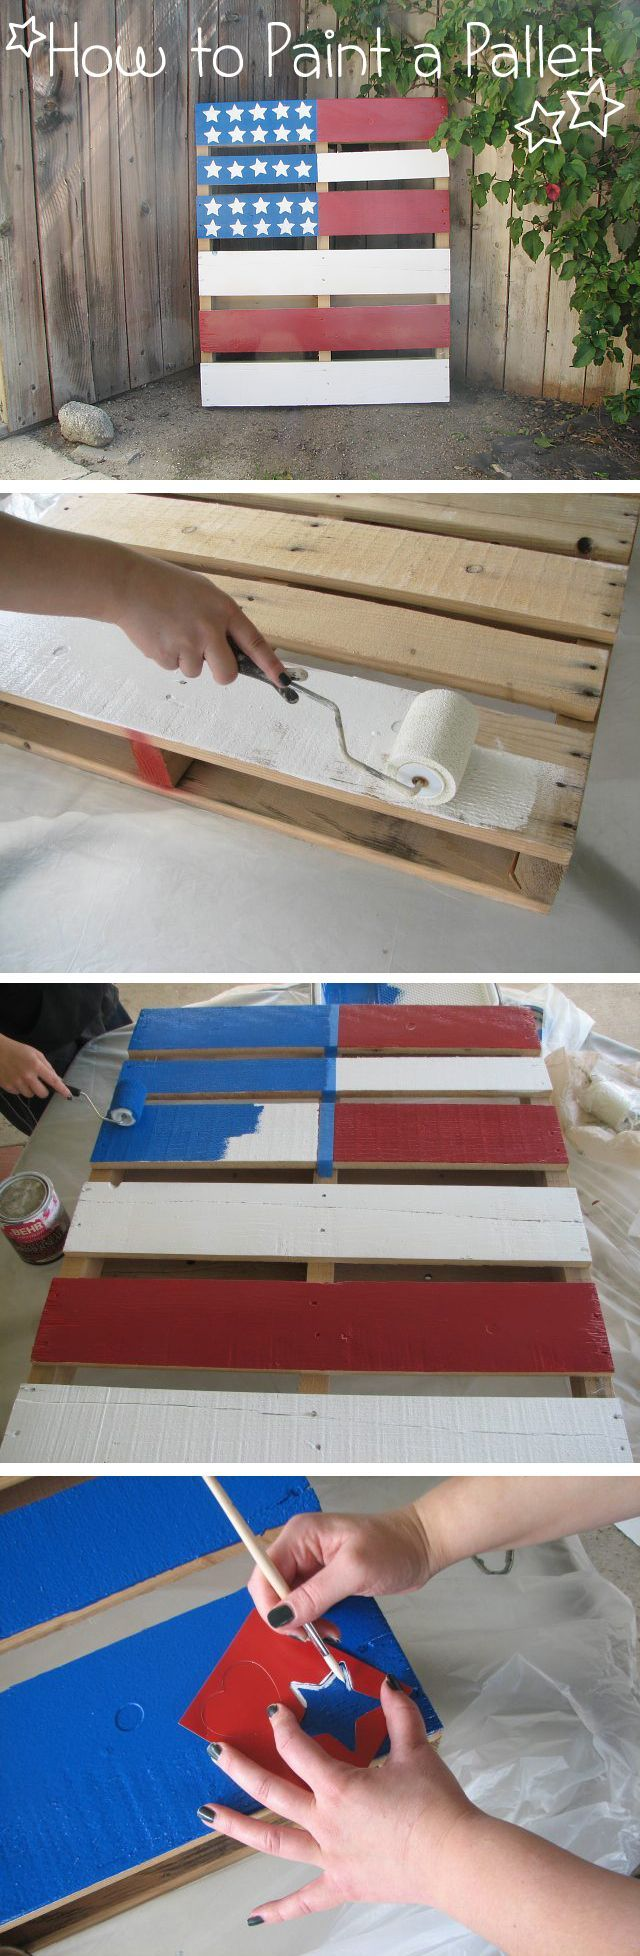 Paint a pallet for awesome outdoor (and indoor) decor! How to instructions here: http://www.ehow.com/how_7854974_paint-pallet.html?utm_source=pinterest.com&utm_medium=referral&utm_content=inline&utm_campaign=fanpage